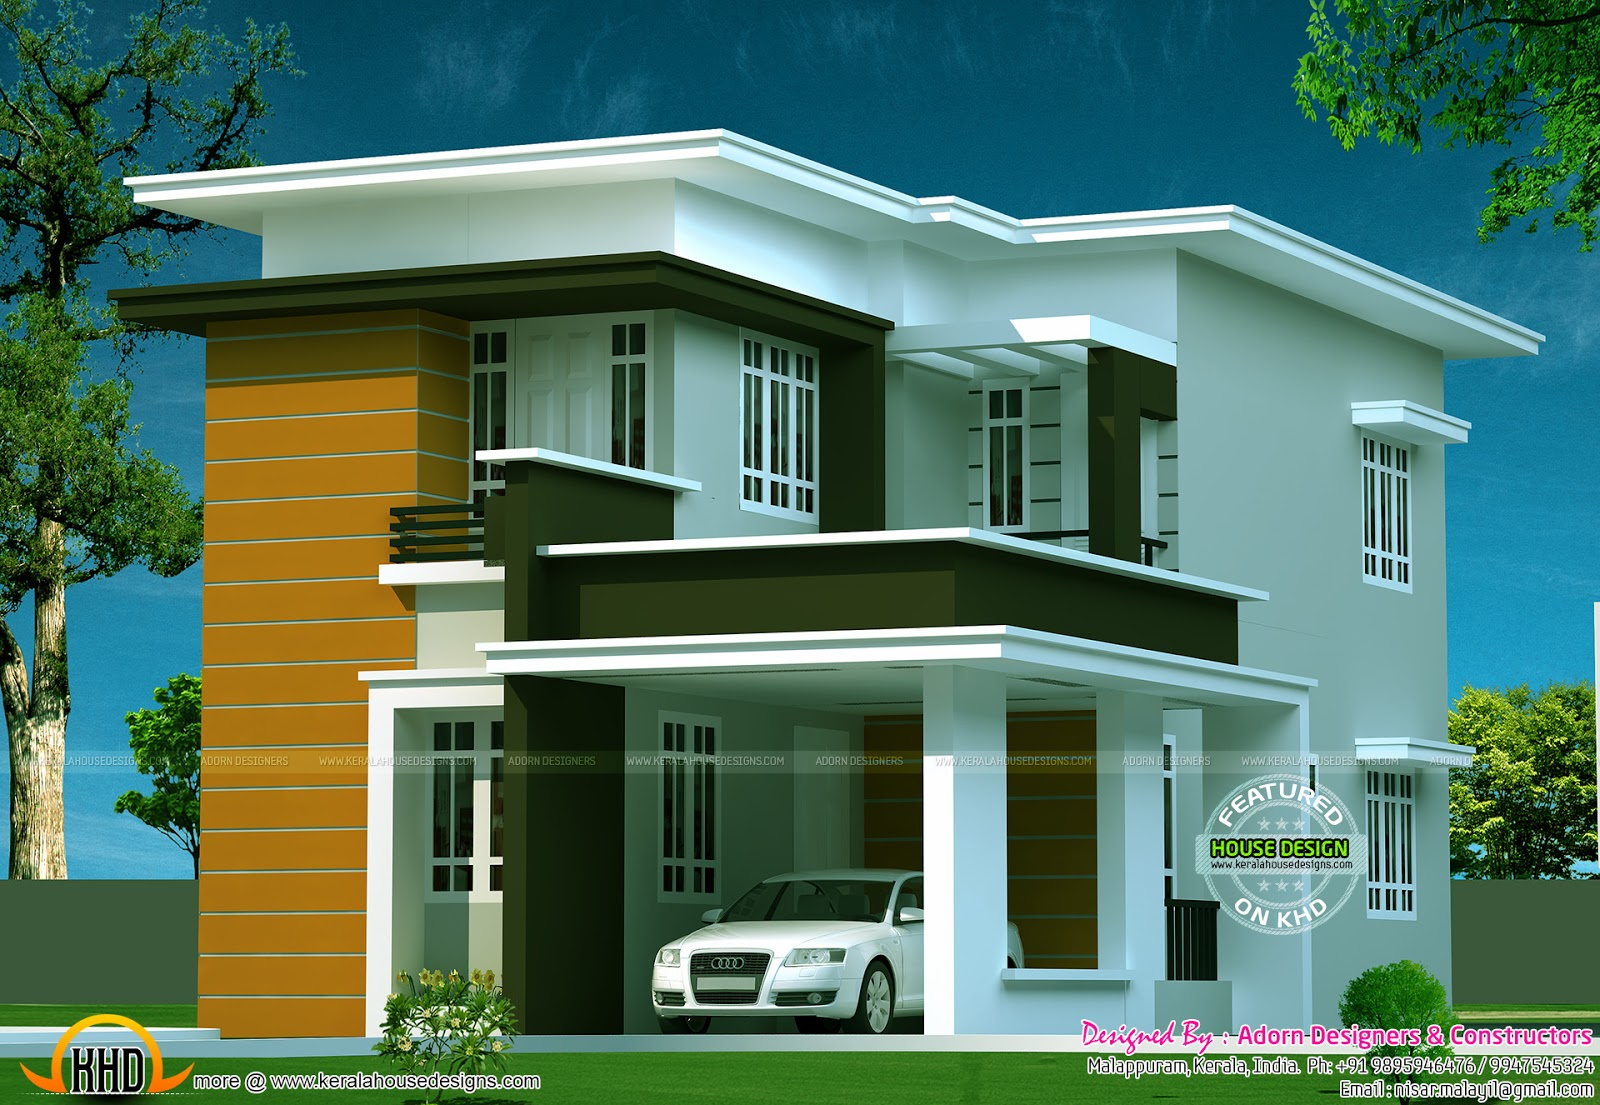 New flat roof house kerala home design and floor plans for Latest house design images